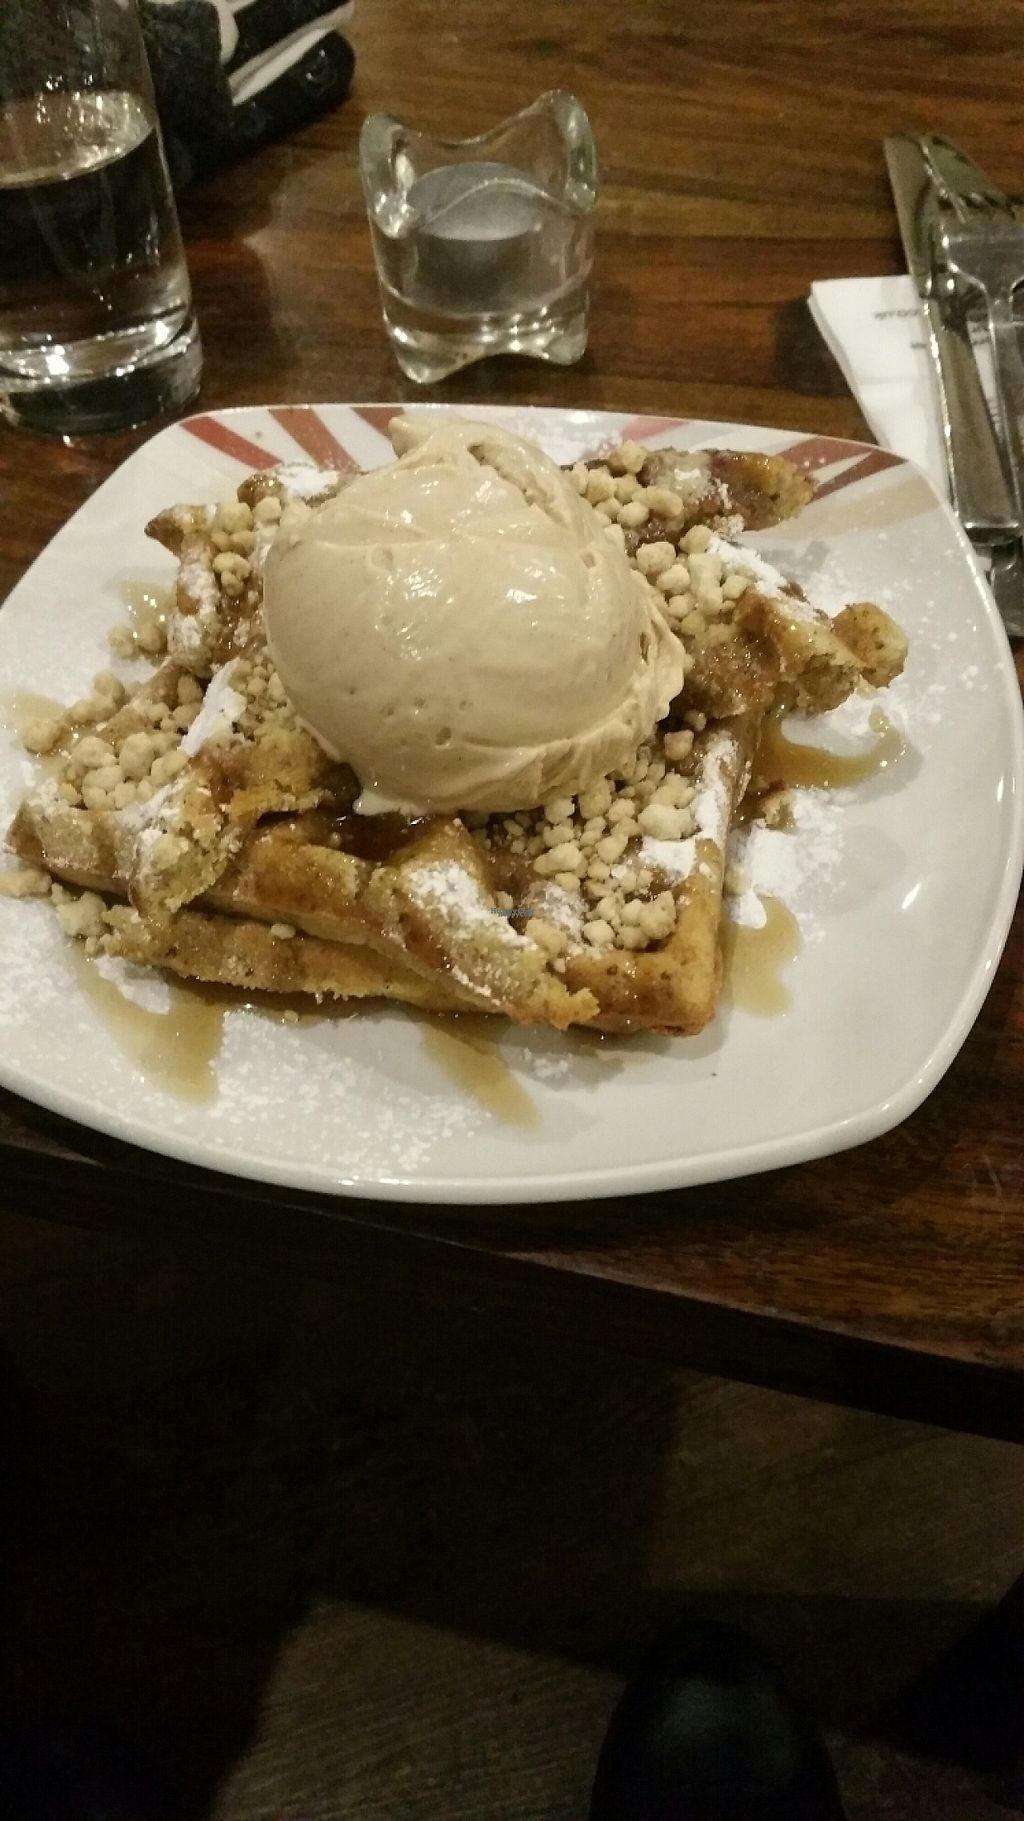 """Photo of Affogato   by <a href=""""/members/profile/KatieBatty"""">KatieBatty</a> <br/>Vegan waffles  <br/> February 16, 2017  - <a href='/contact/abuse/image/83180/227134'>Report</a>"""